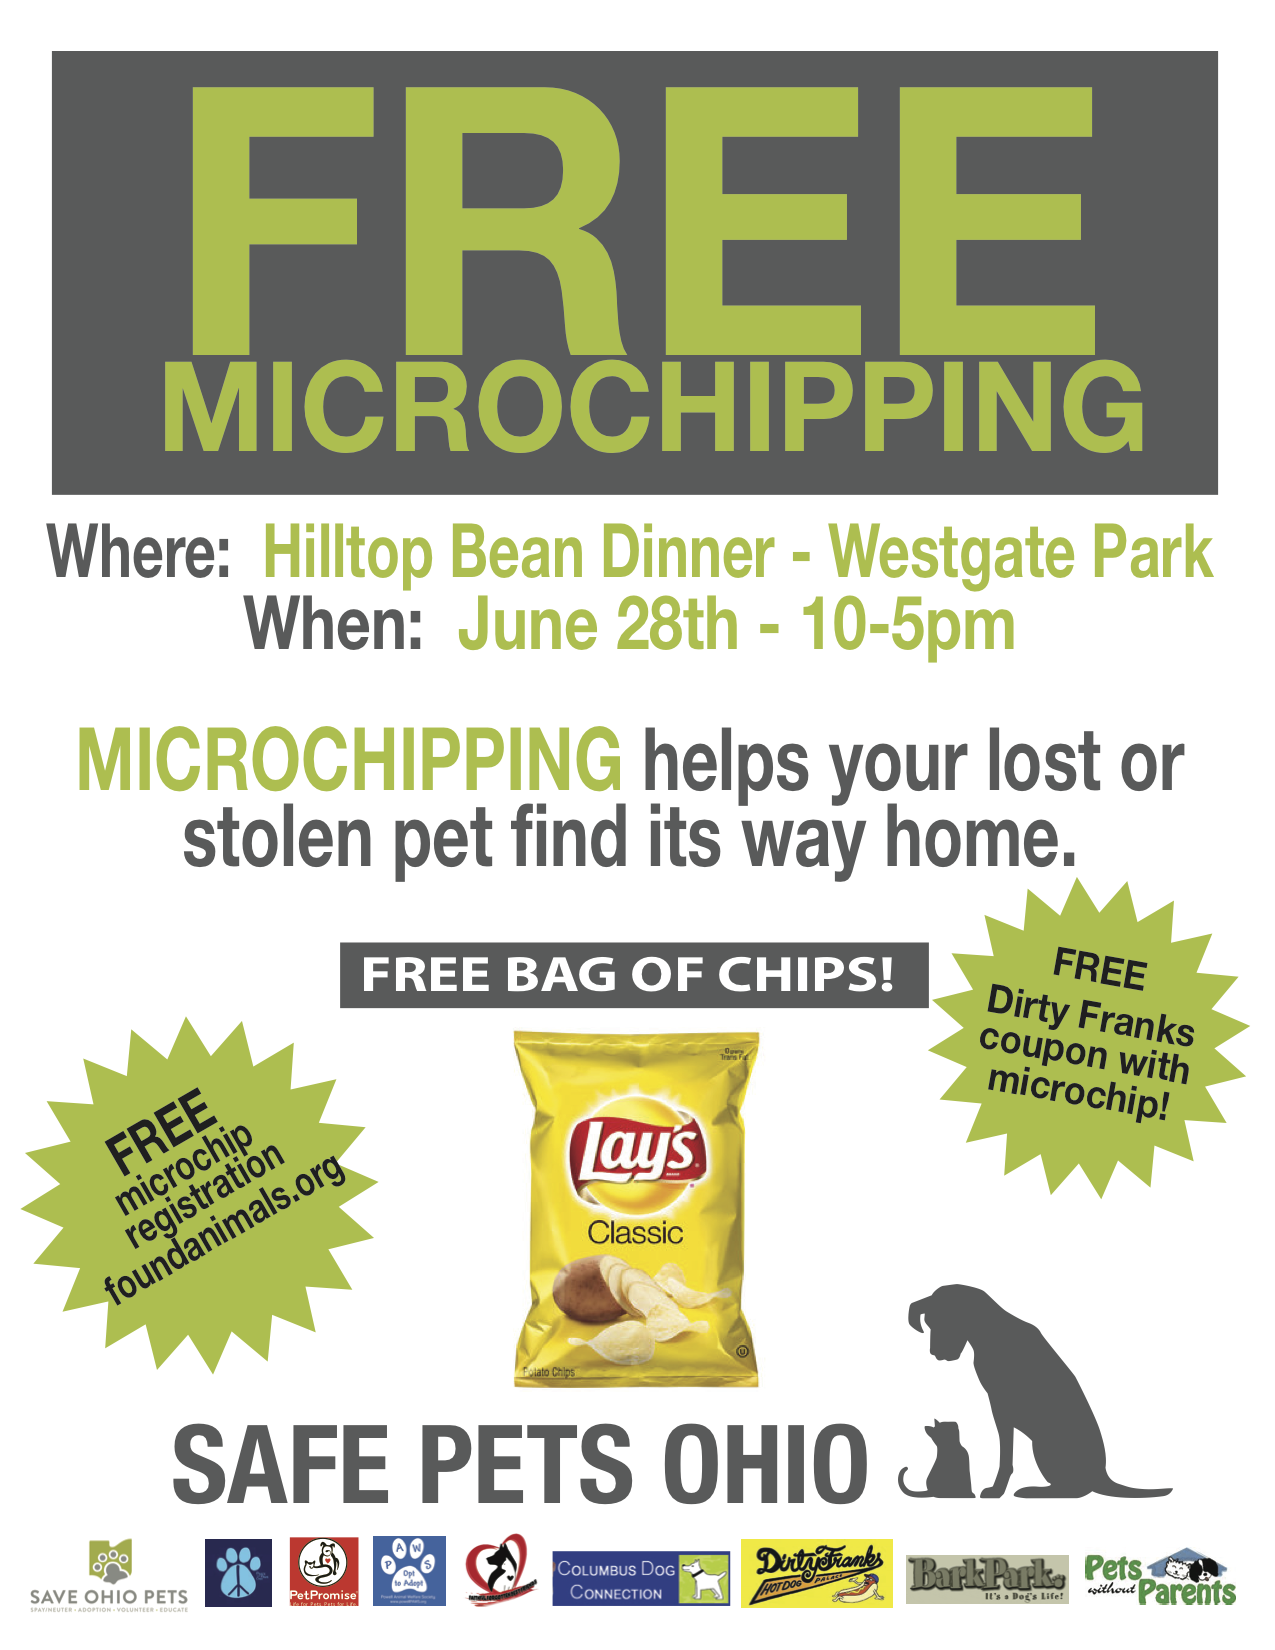 Free microchipping!